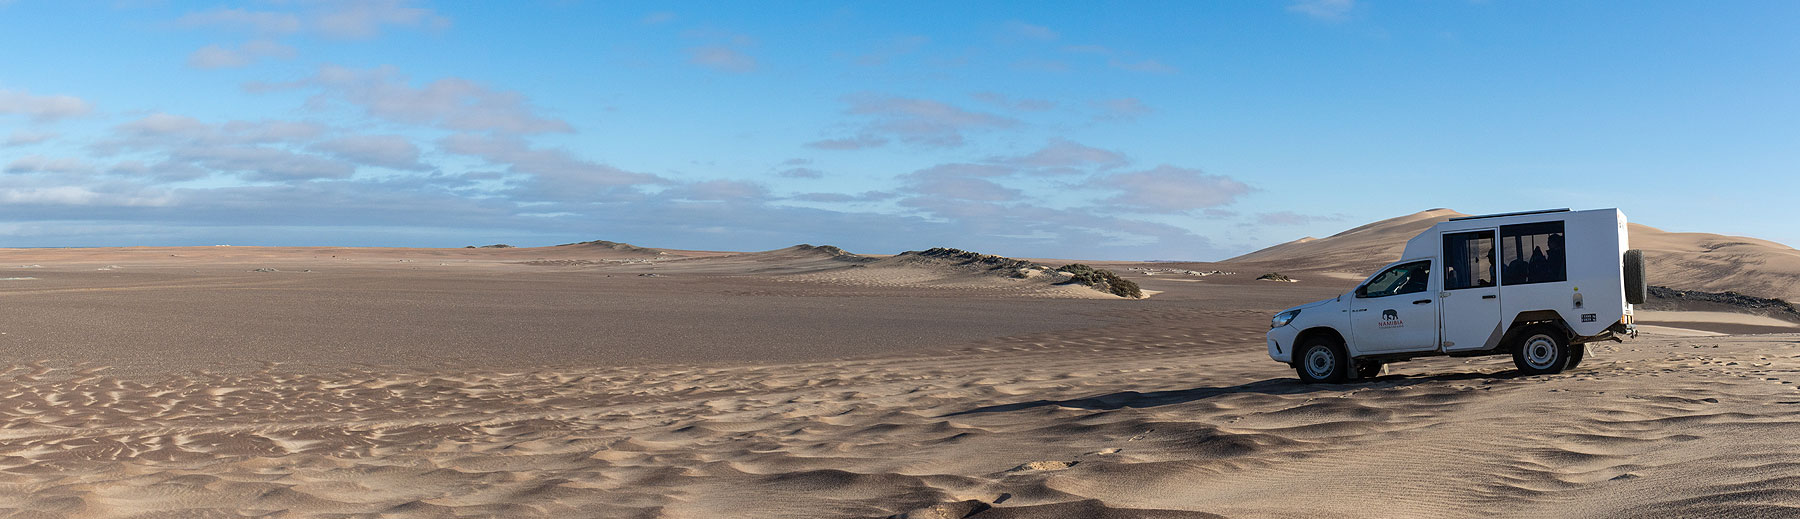 Our safari game drive vehicle on an adventure in the Swakopmund dunes